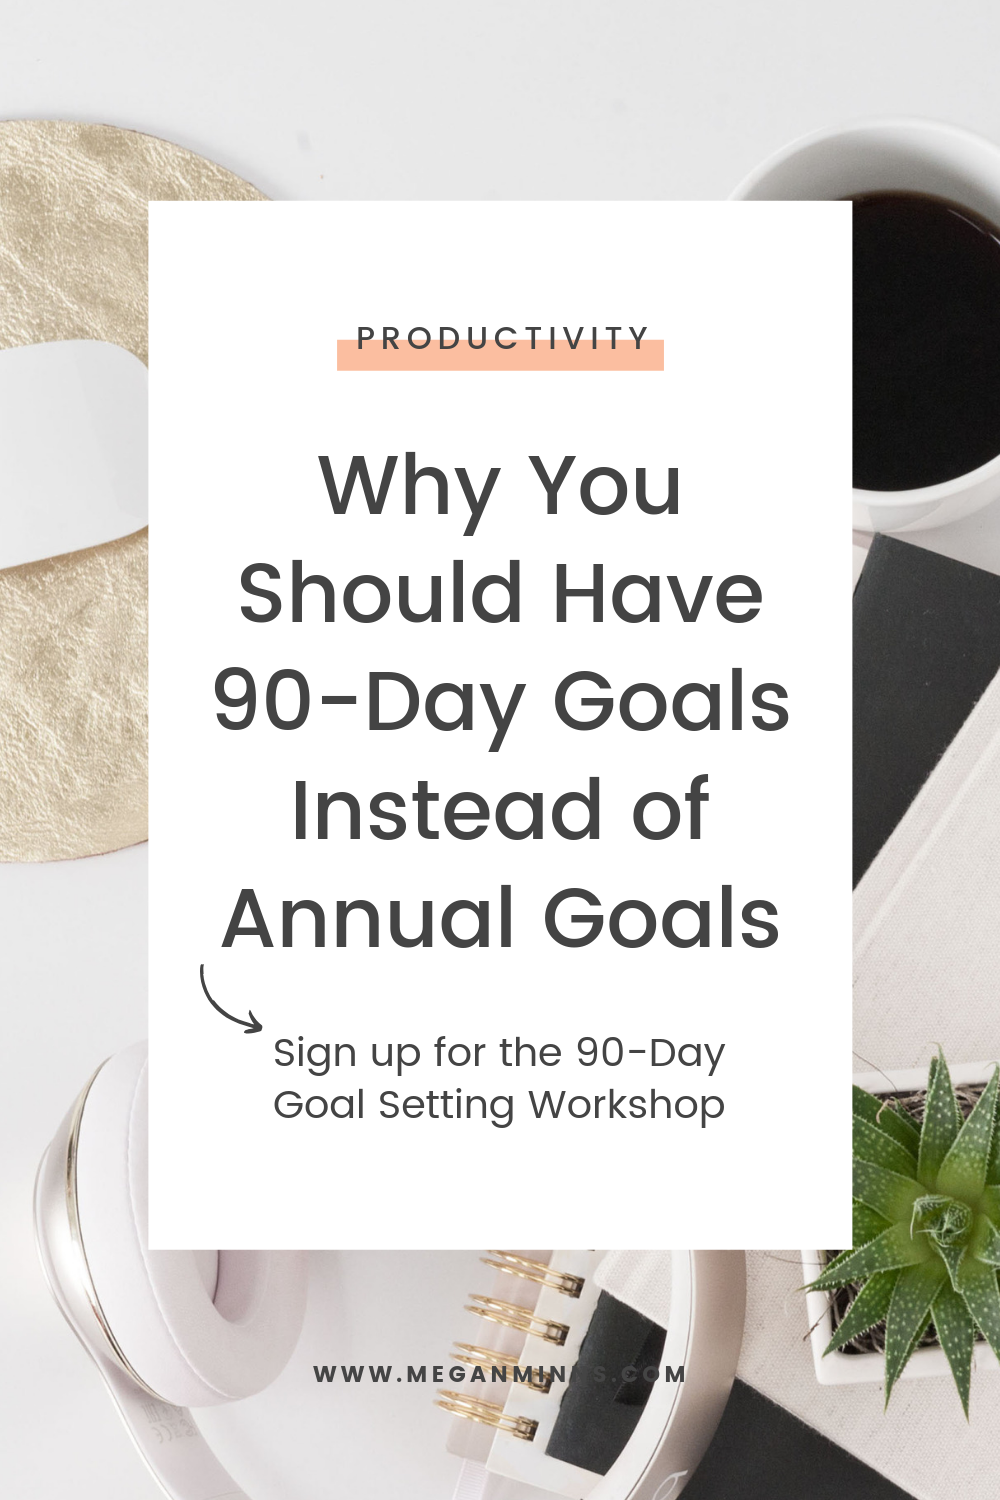 Why You Should Have 90-Day Goals Instead of Annual Goals  Today I'm sharing exactly why 90-Day Goals are more effective than setting a bunch goals at the beginning of the year. Do you even remember all those goals you set back in January?  By setting a few focussed, 90-day goals, you're going to be able followthrough much more easily!  READ THE FULL BLOG POST HERE ✨ https://meganminns.com/blog/why-90-day-goals